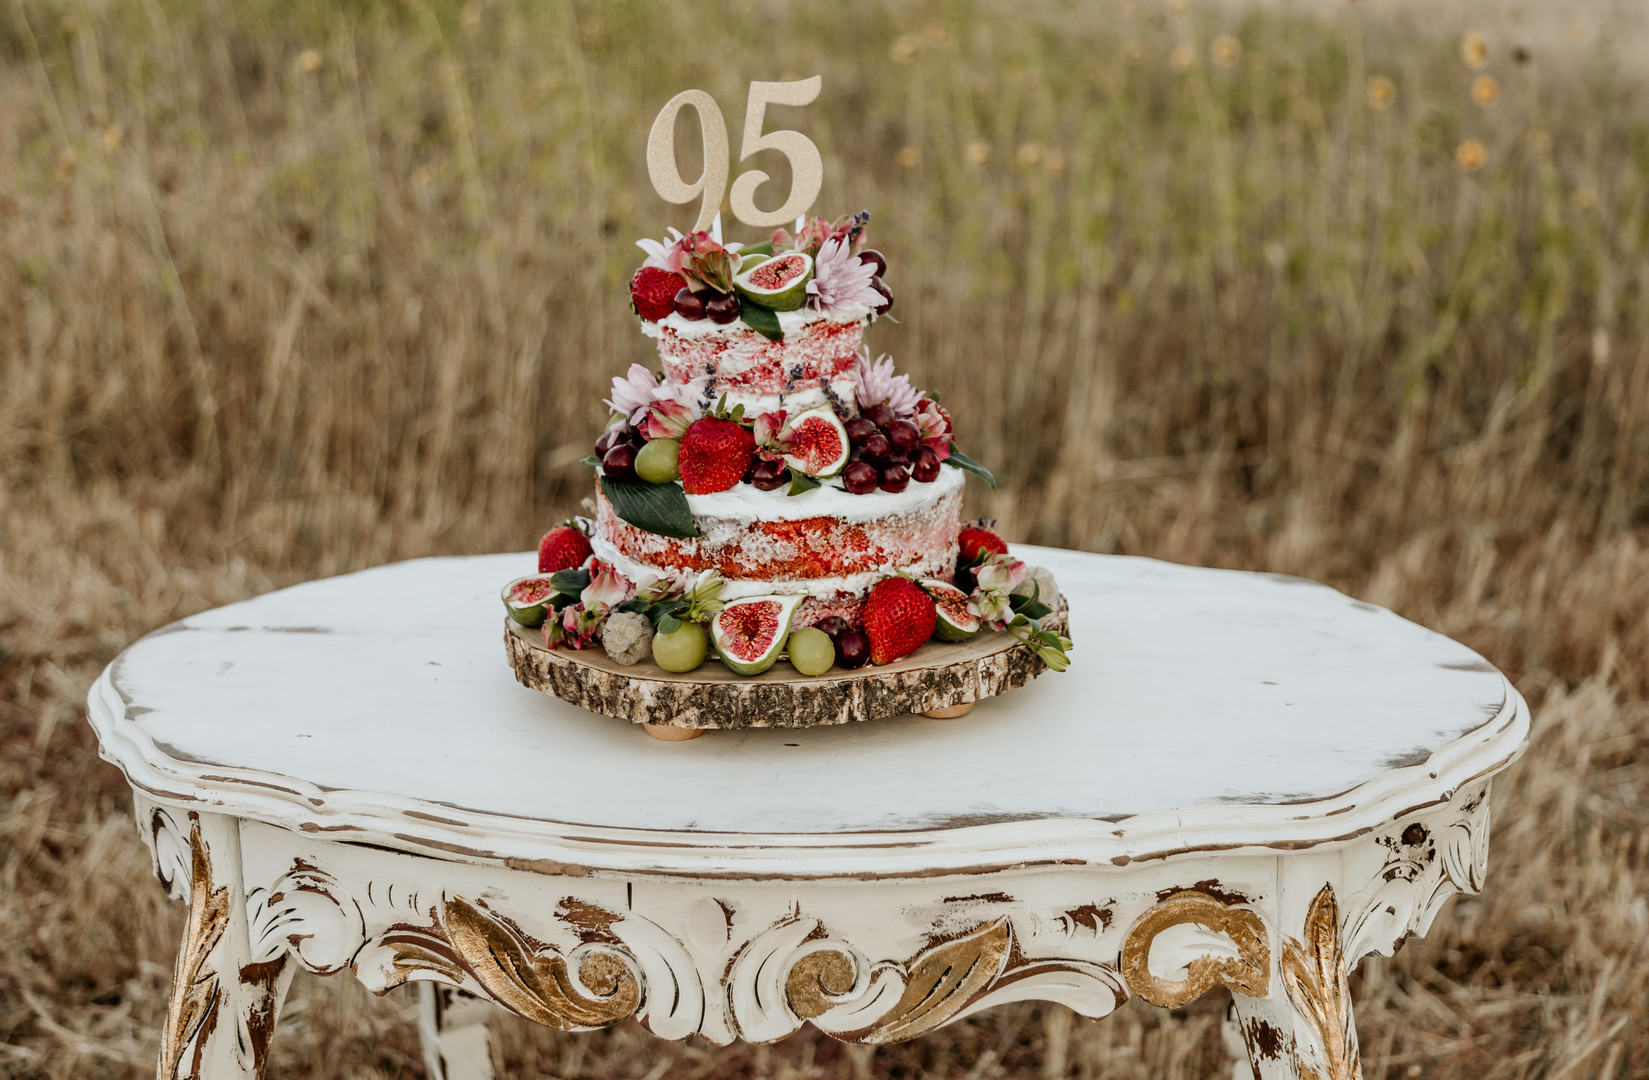 Looking for a unique birthday cake for your next party? Check out this awesome 95th birthday cake covered in flowers and fresh fruit! Featuring a 95th birthday cake topper too, this birthday photo shoot will give you ideas for decoration too! #birthdaycake #birthdays #birthdayparties #birthdaycaketopper #photoshoots